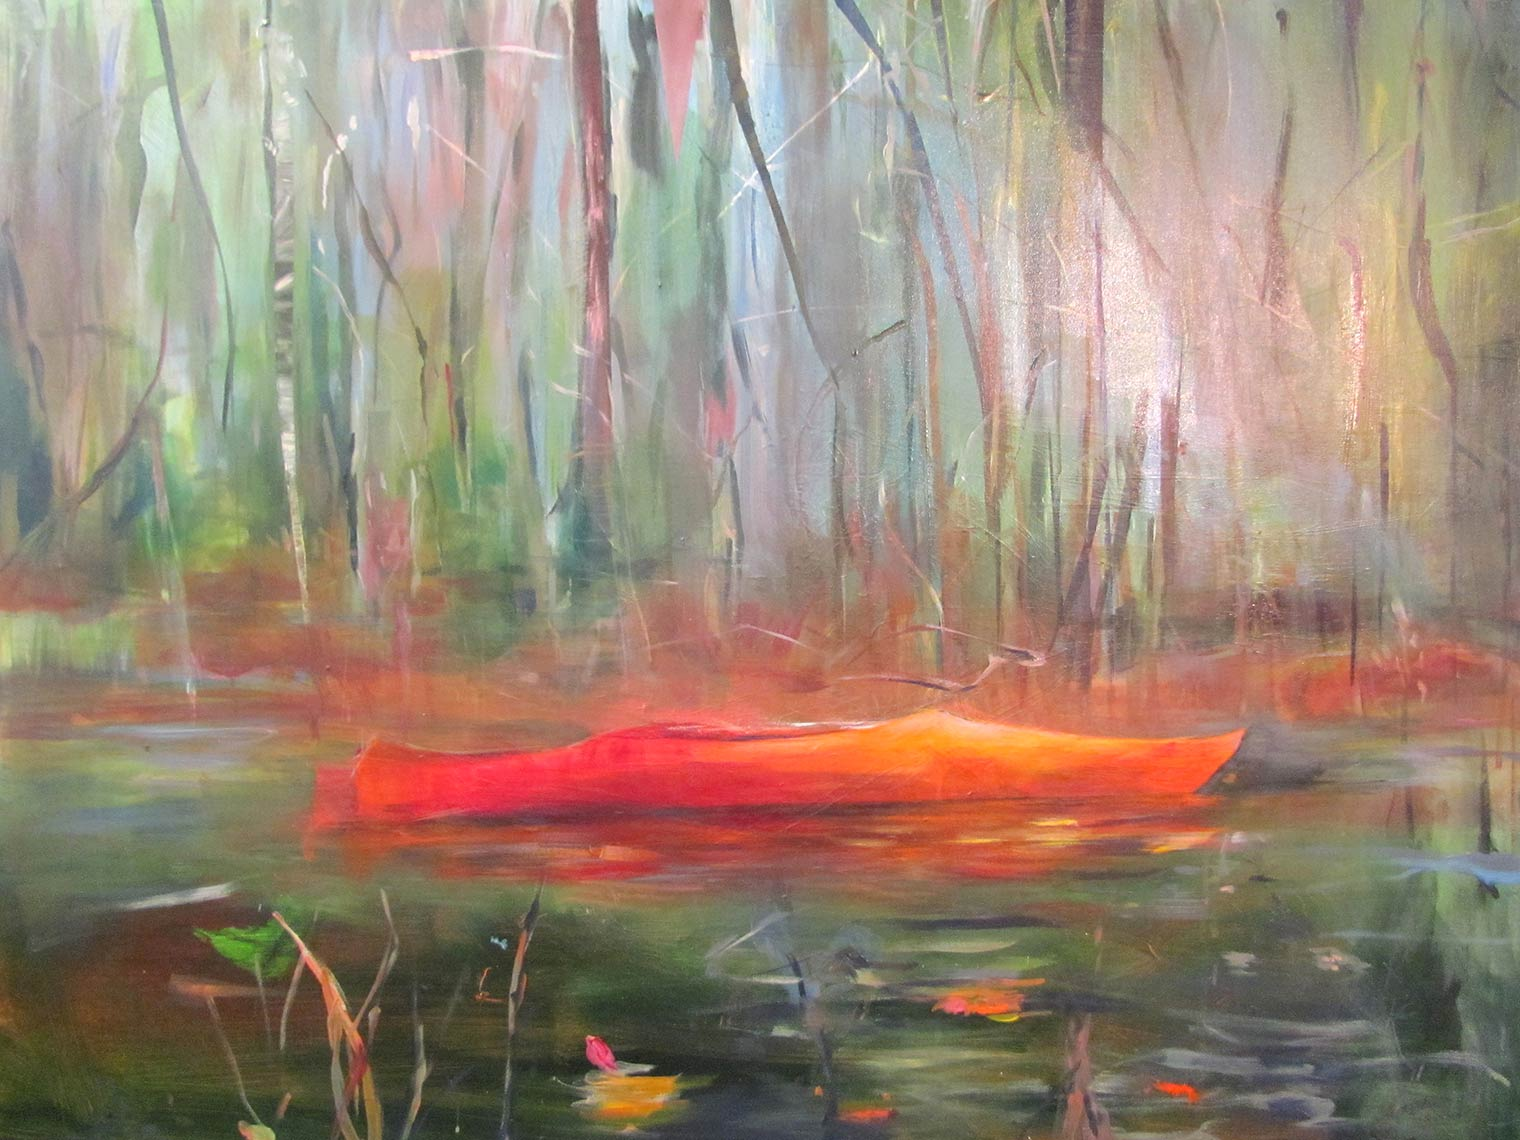 Canoe--2016-Acrylic-on-Canvas-38x48-inches